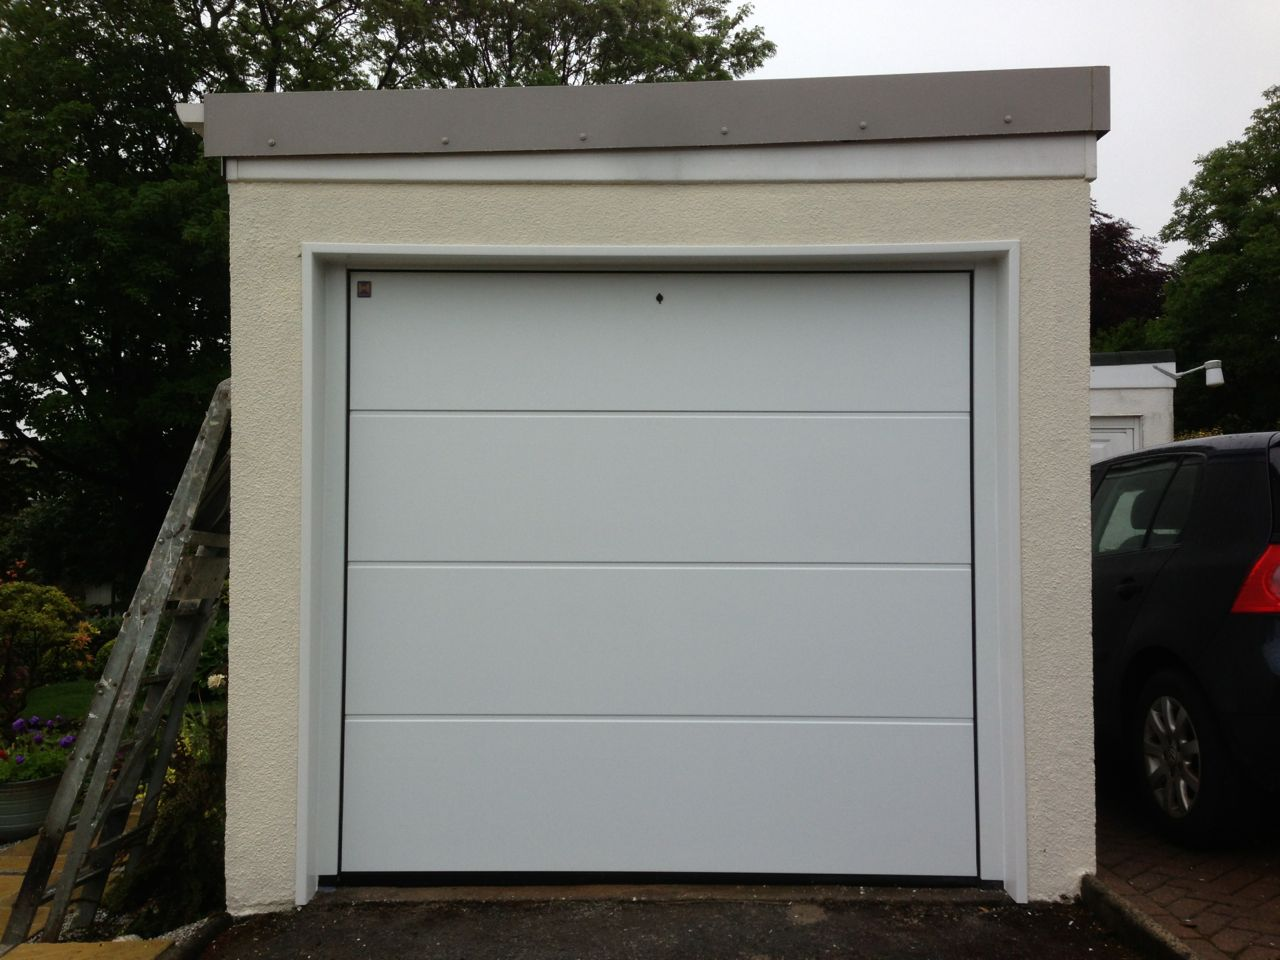 Garage doors south west garage doors sliding doors these are available in a range of materials and styles there are three main manufacturers that we use hormann hst vertico and rundum mier rubansaba